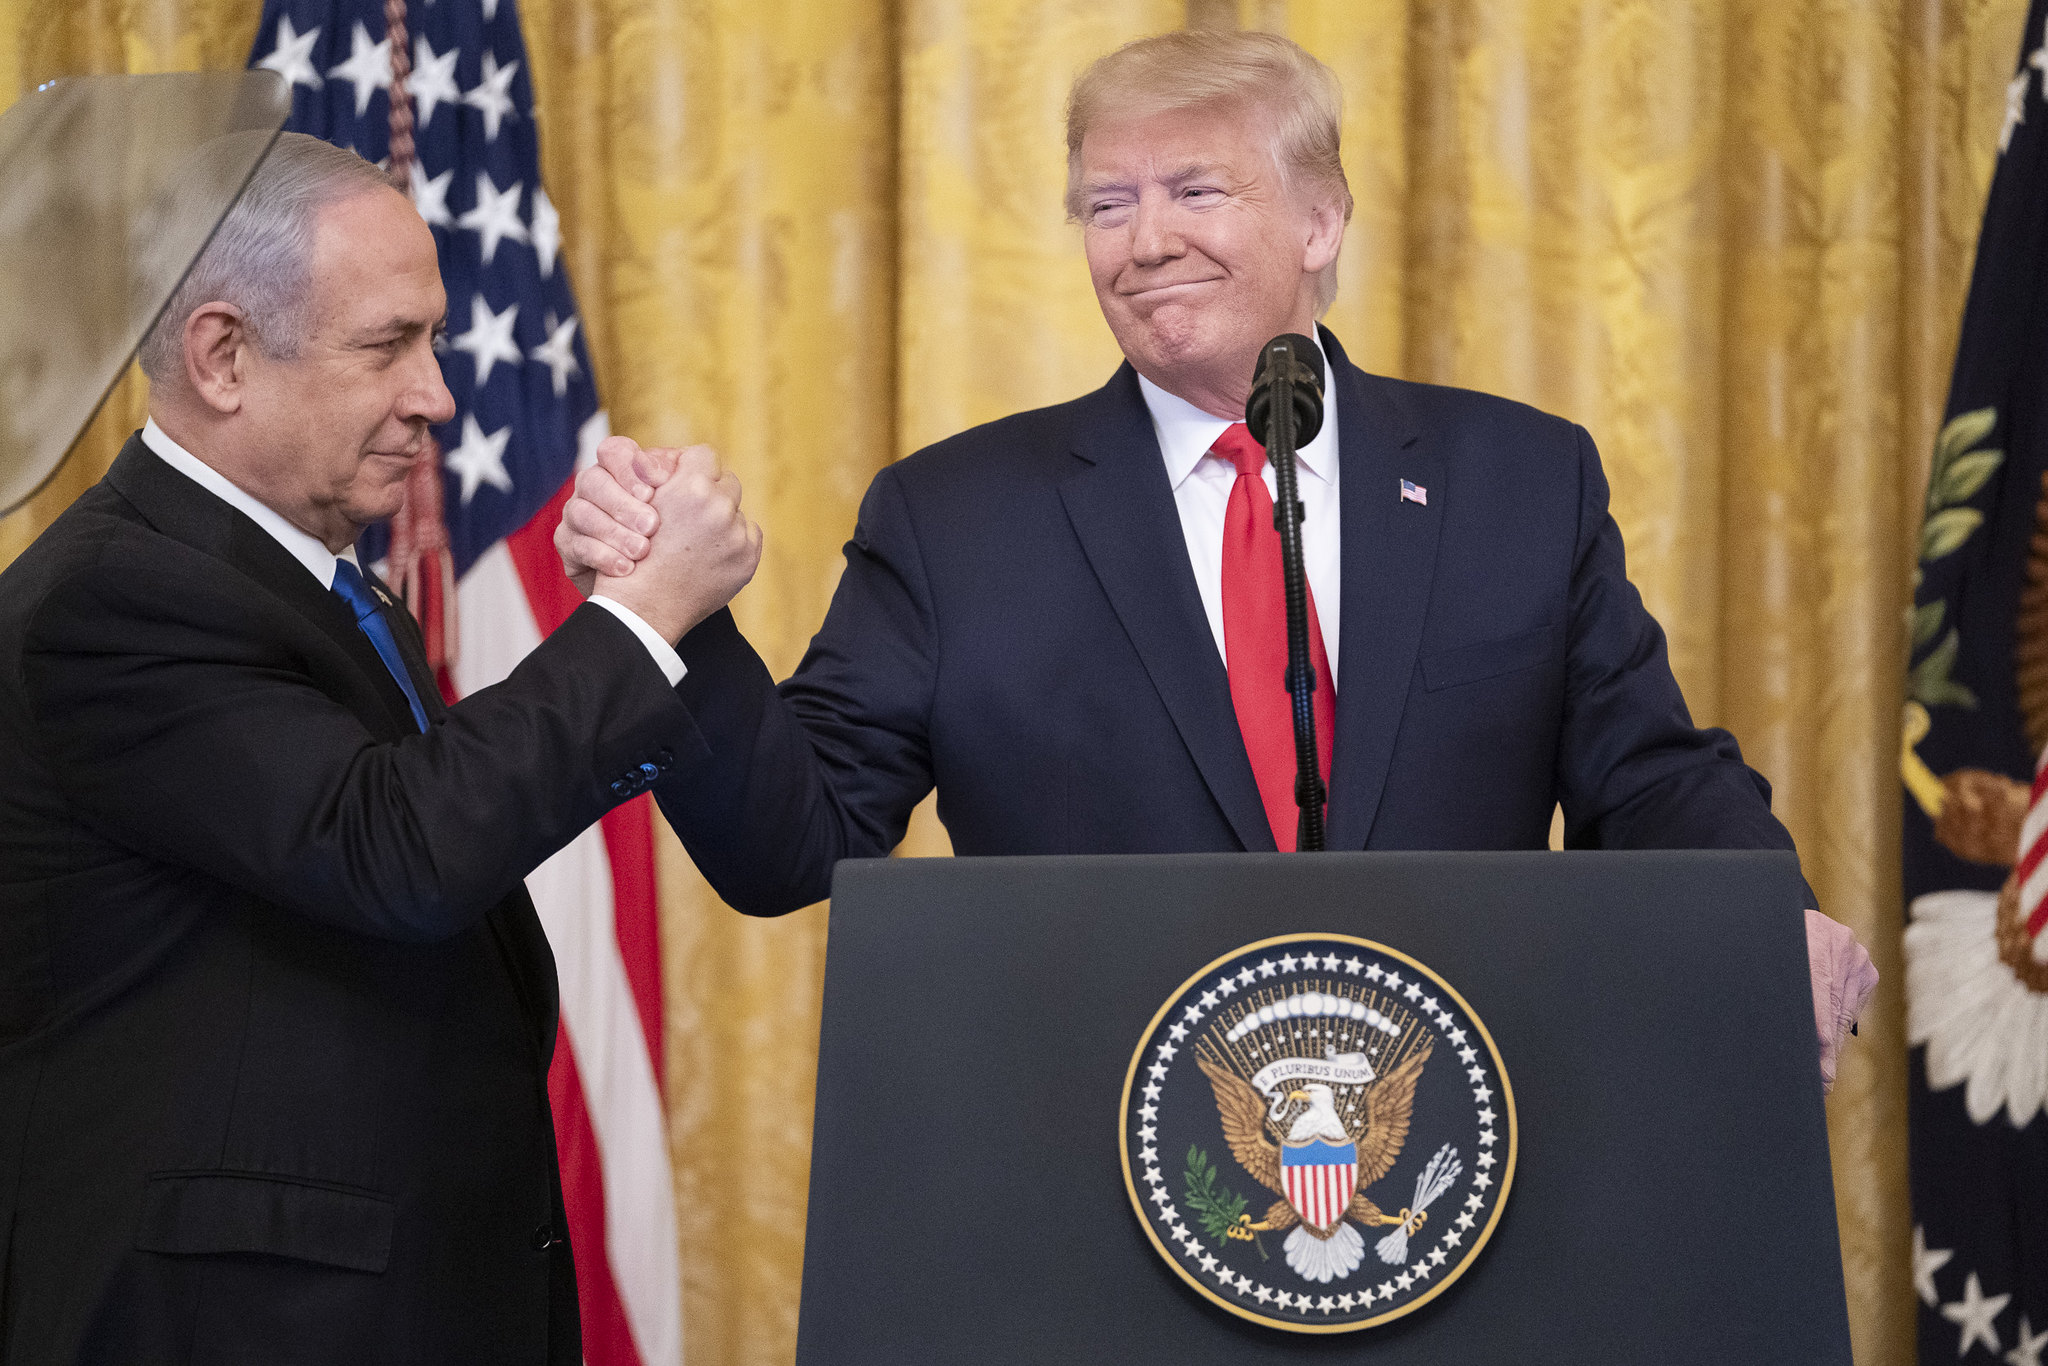 U.S. President Donald Trump delivers remarks with Israeli Prime Minister Benjamin Netanyahu Tuesday, Jan. 28, 2020, in the East Room of the White House to unveil details of the Trump administration's Middle East plan. (Shealah Craighead/White House)